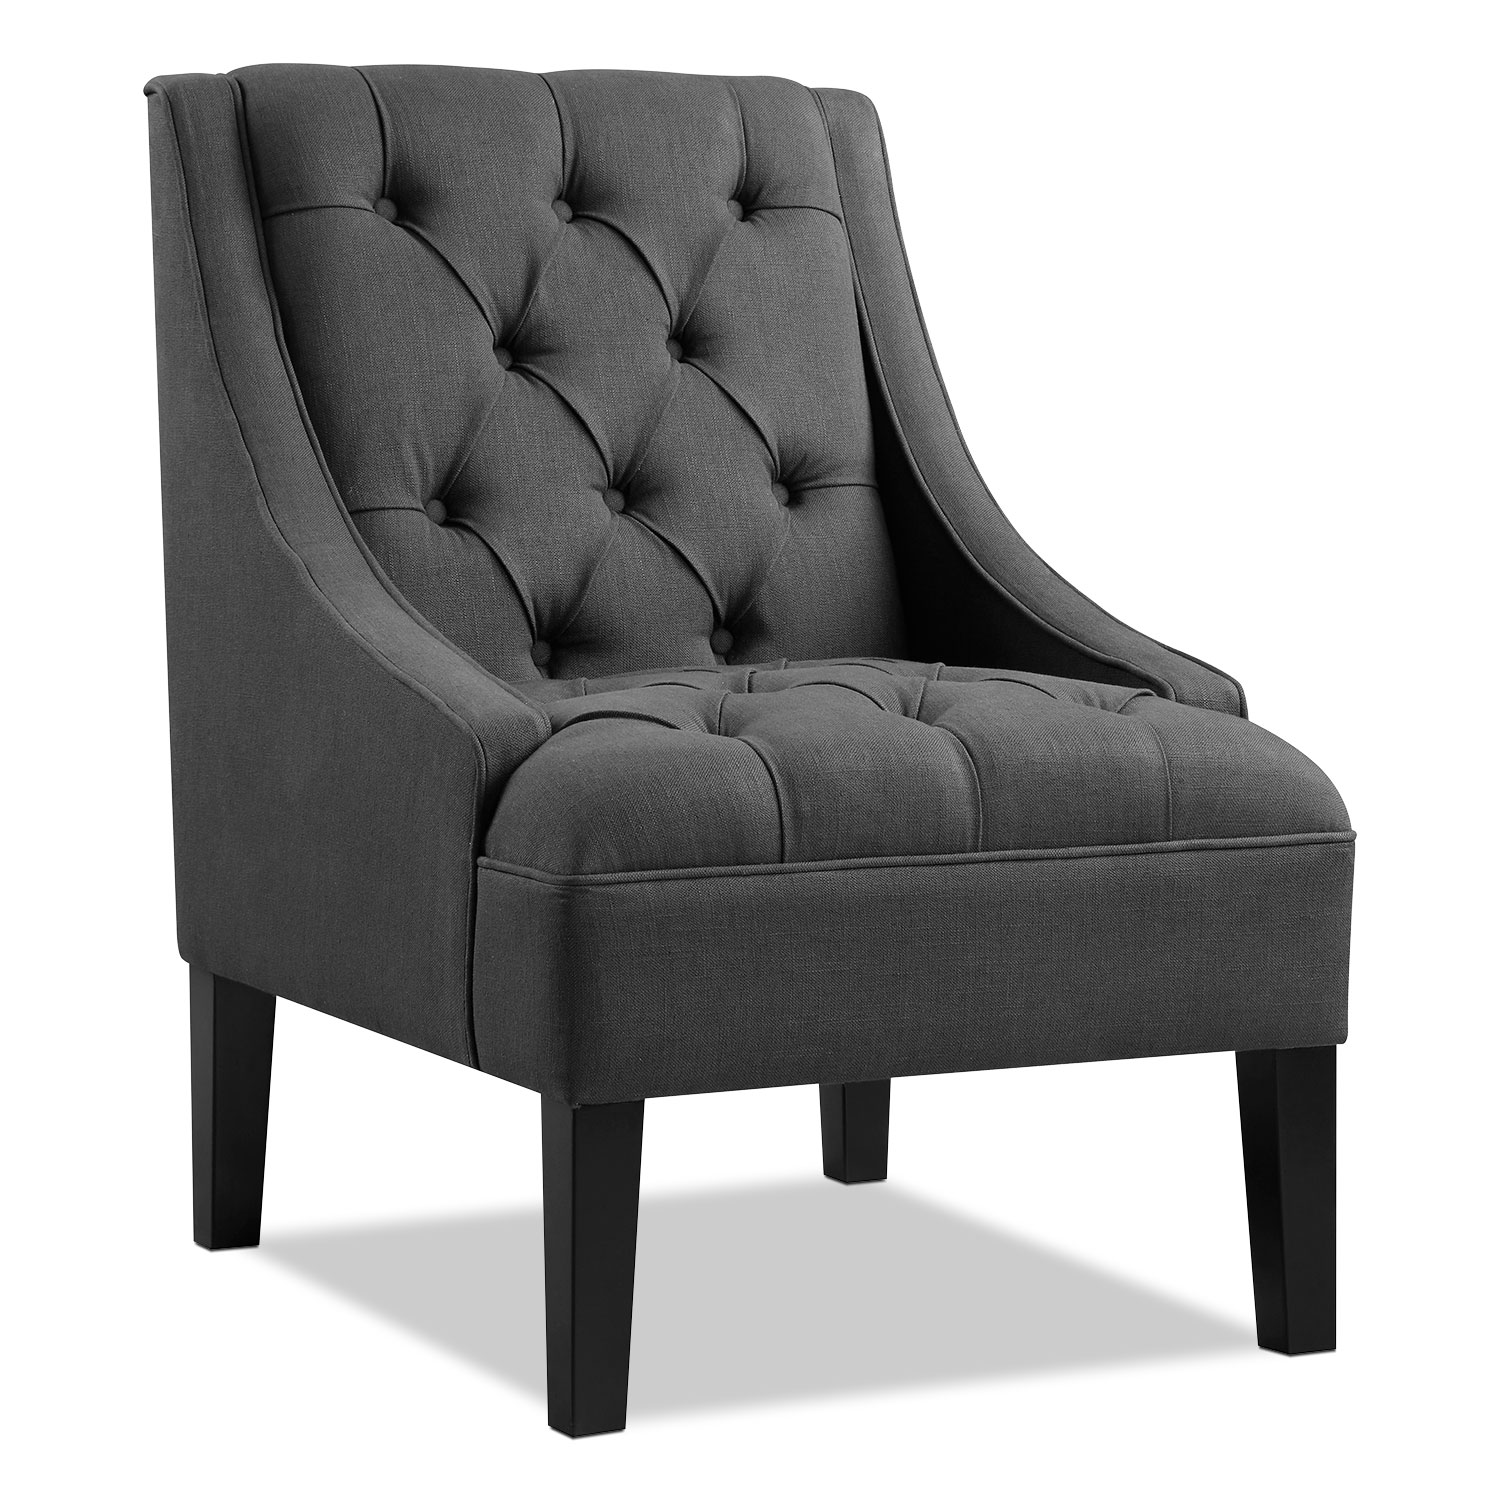 Greylin accent chair gray american signature furniture for Living room with accent chairs